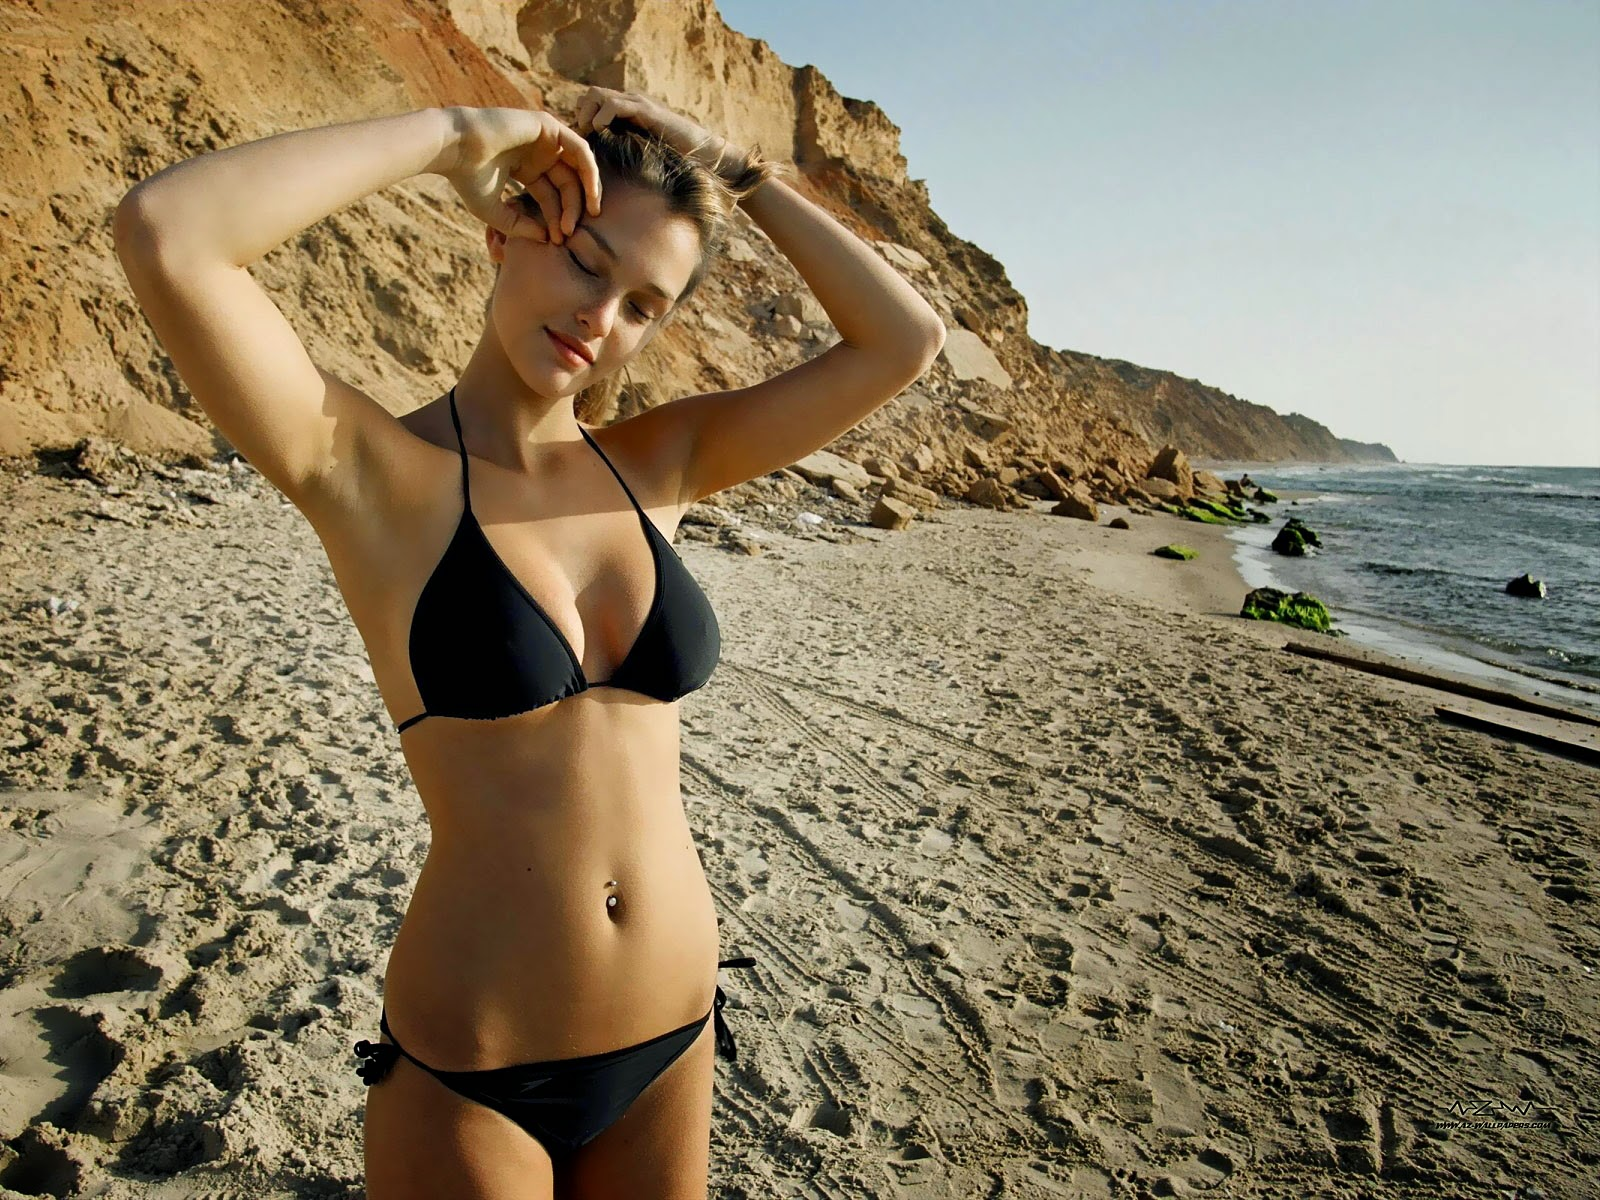 Hot Bar Refaeli Hoty nudes (47 foto and video), Sexy, Is a cute, Boobs, cameltoe 2015